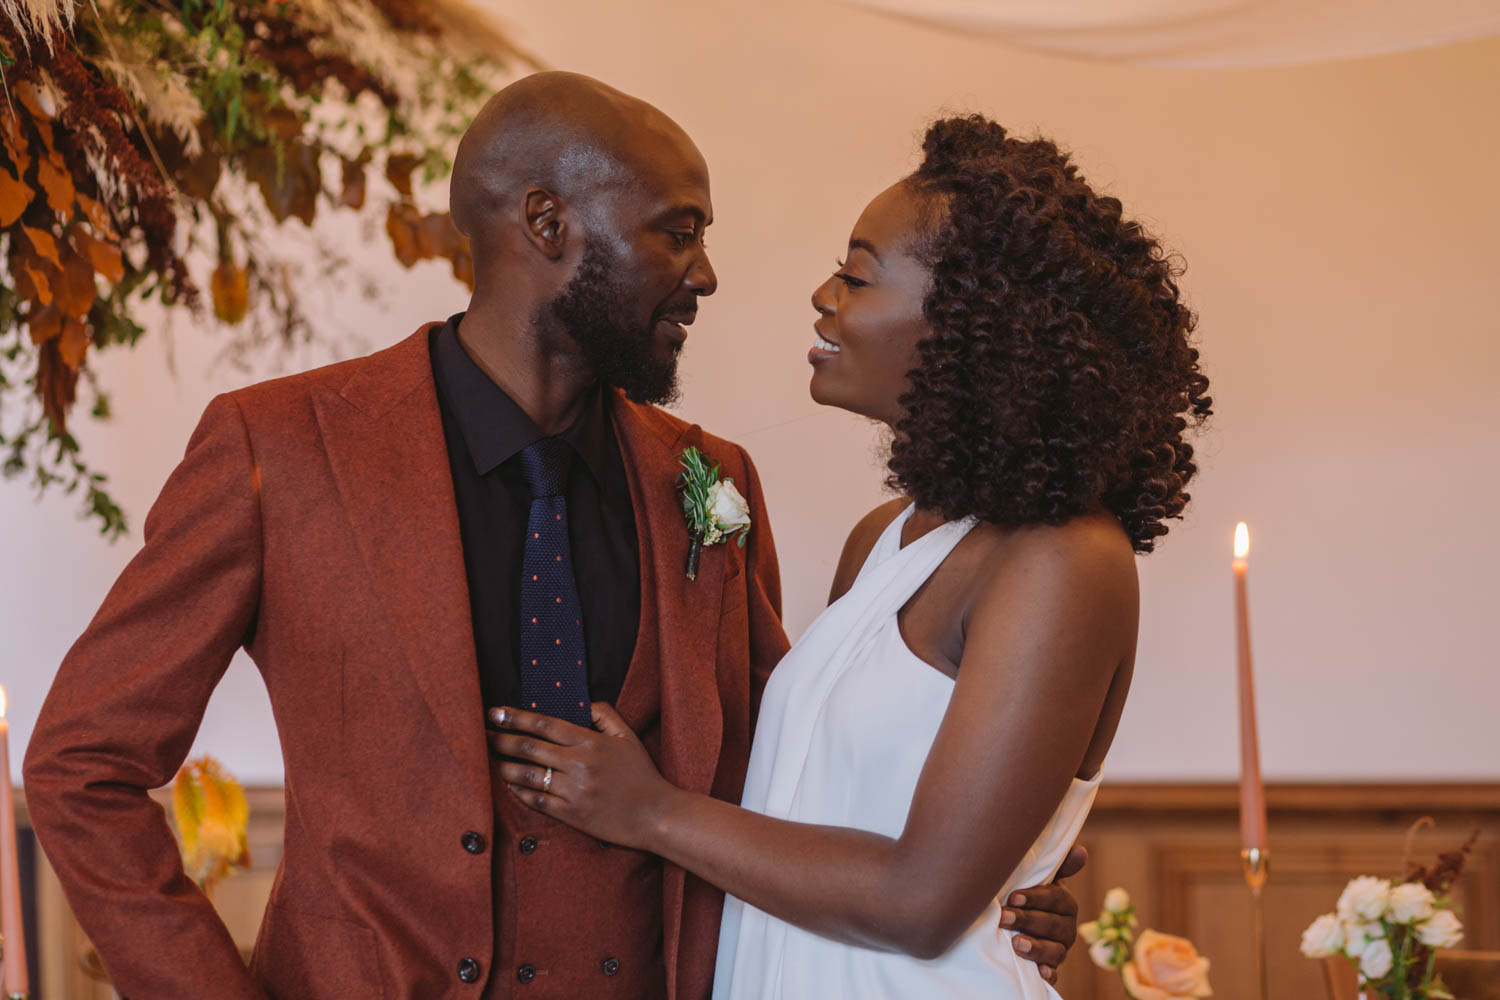 Modern & Intimate Black Wedding Inspiration in London – Real Couple